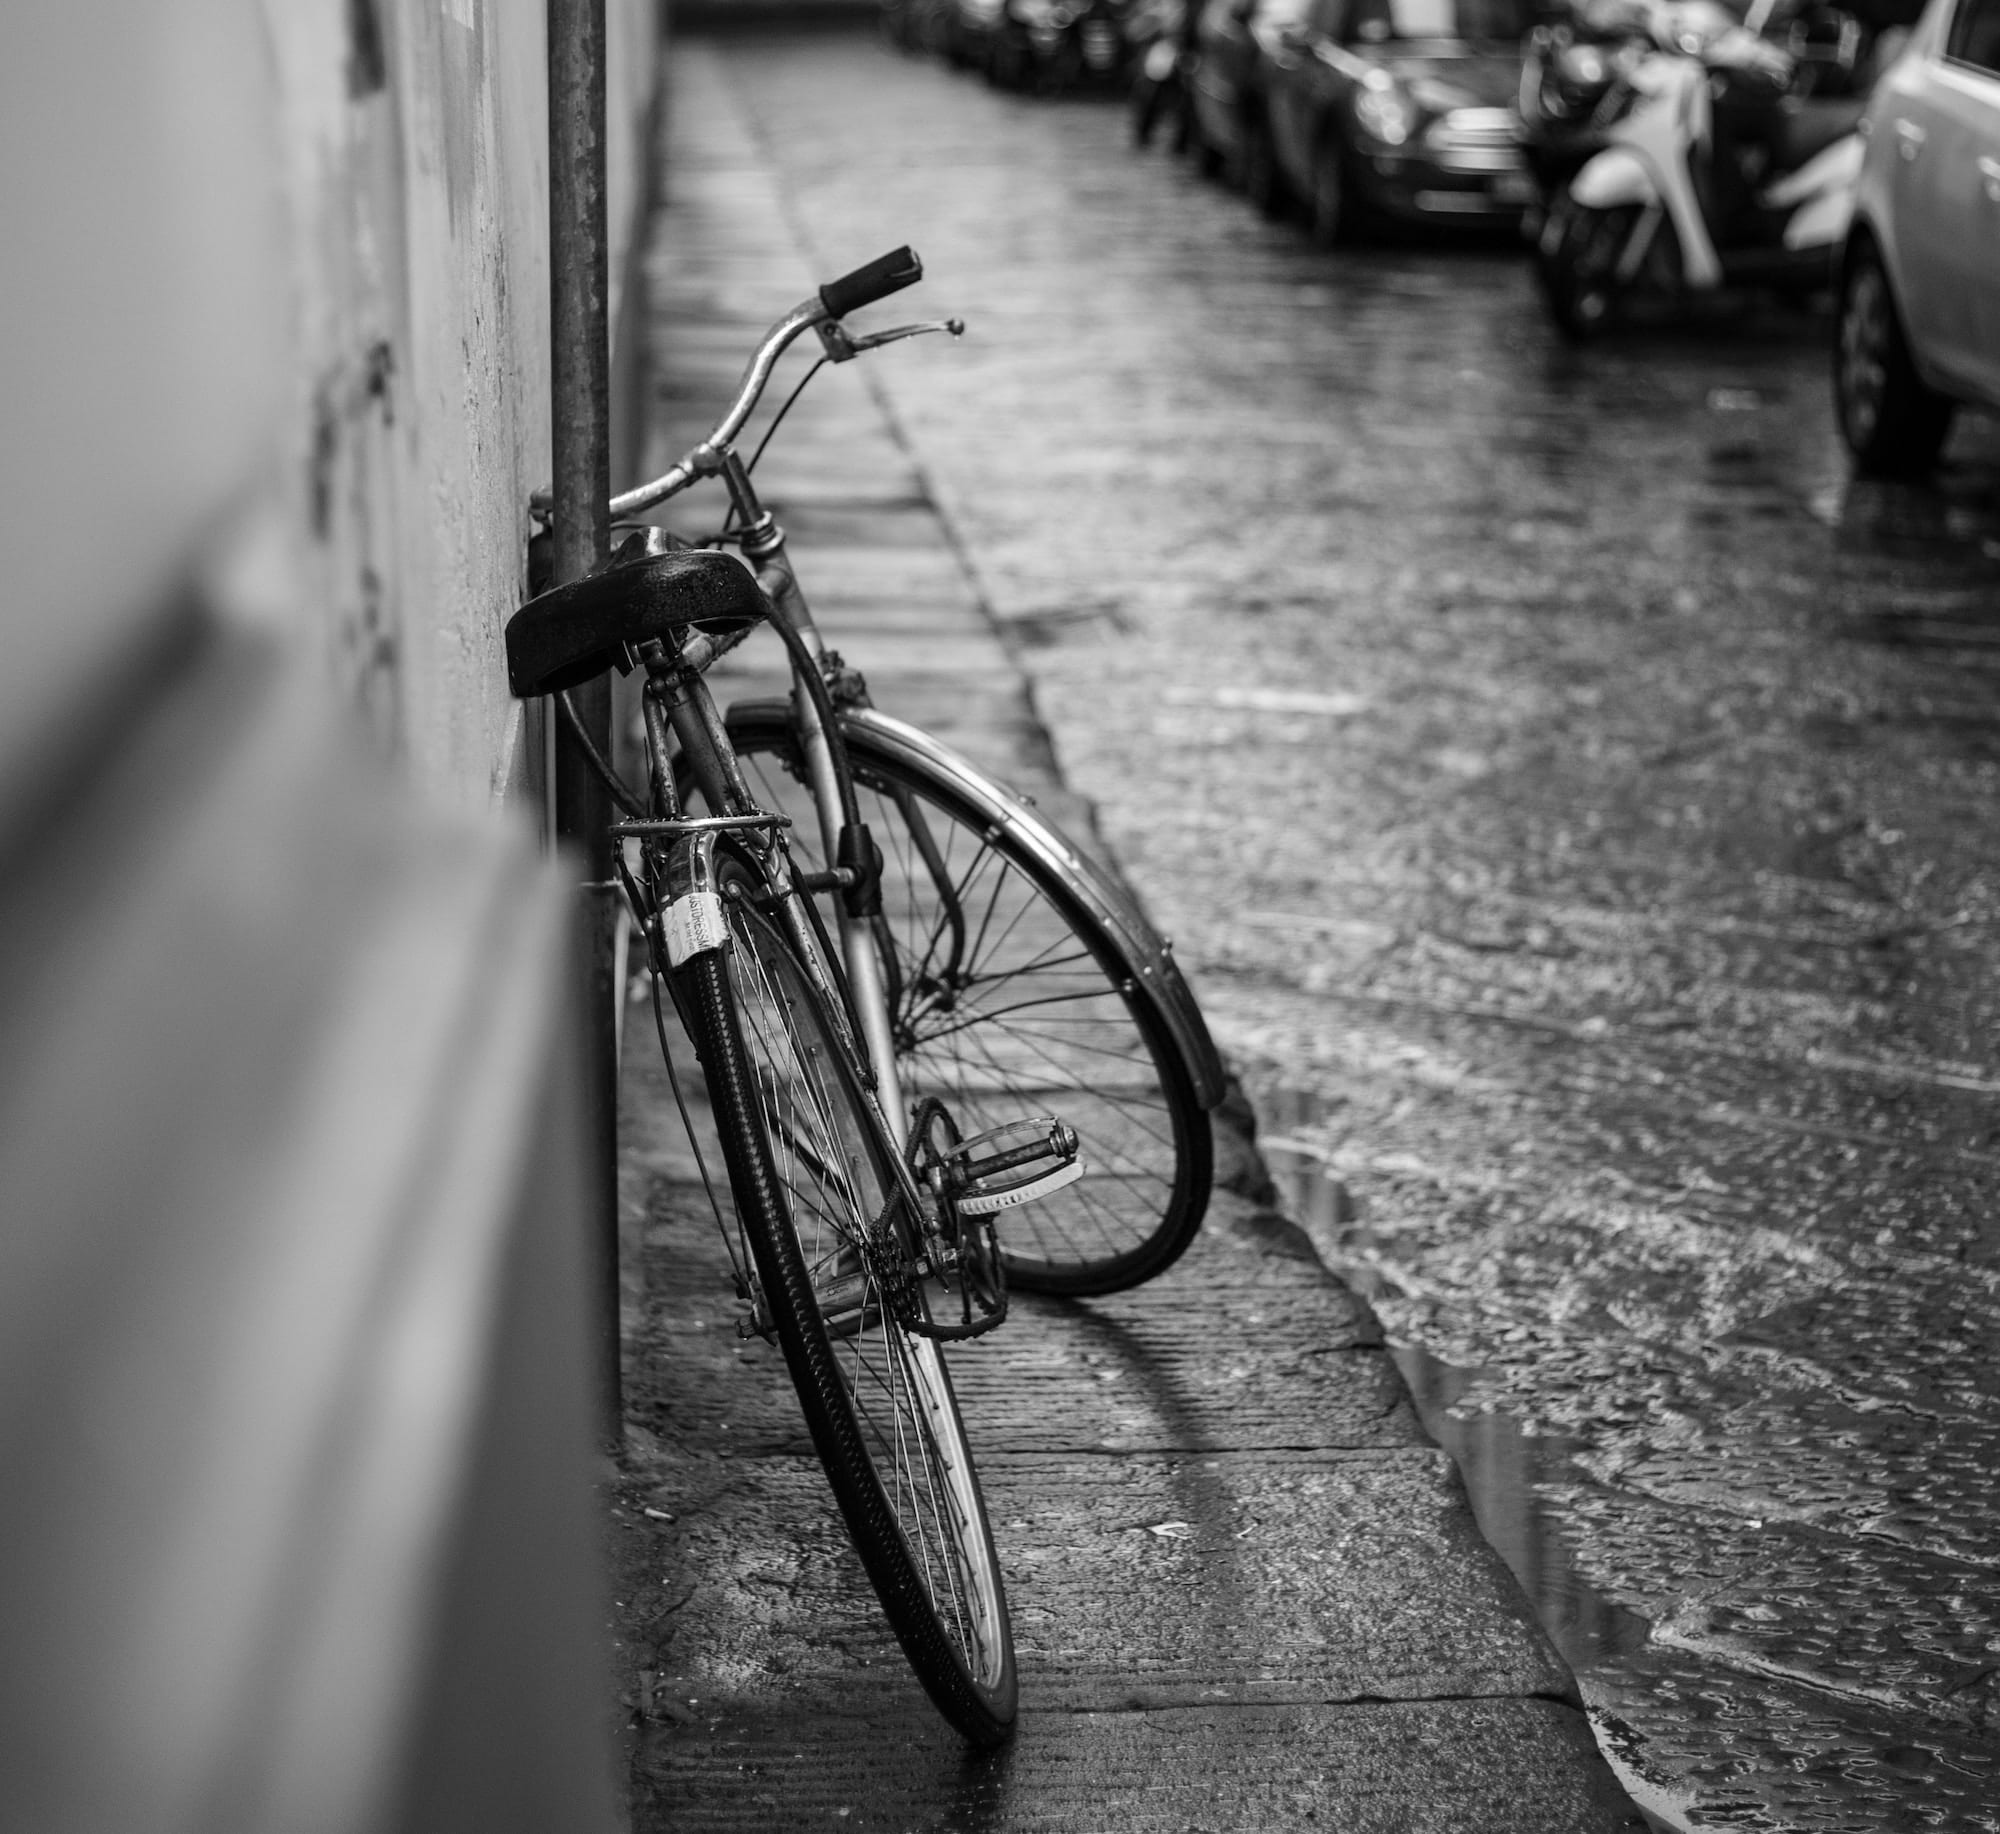 tips for biking in rain